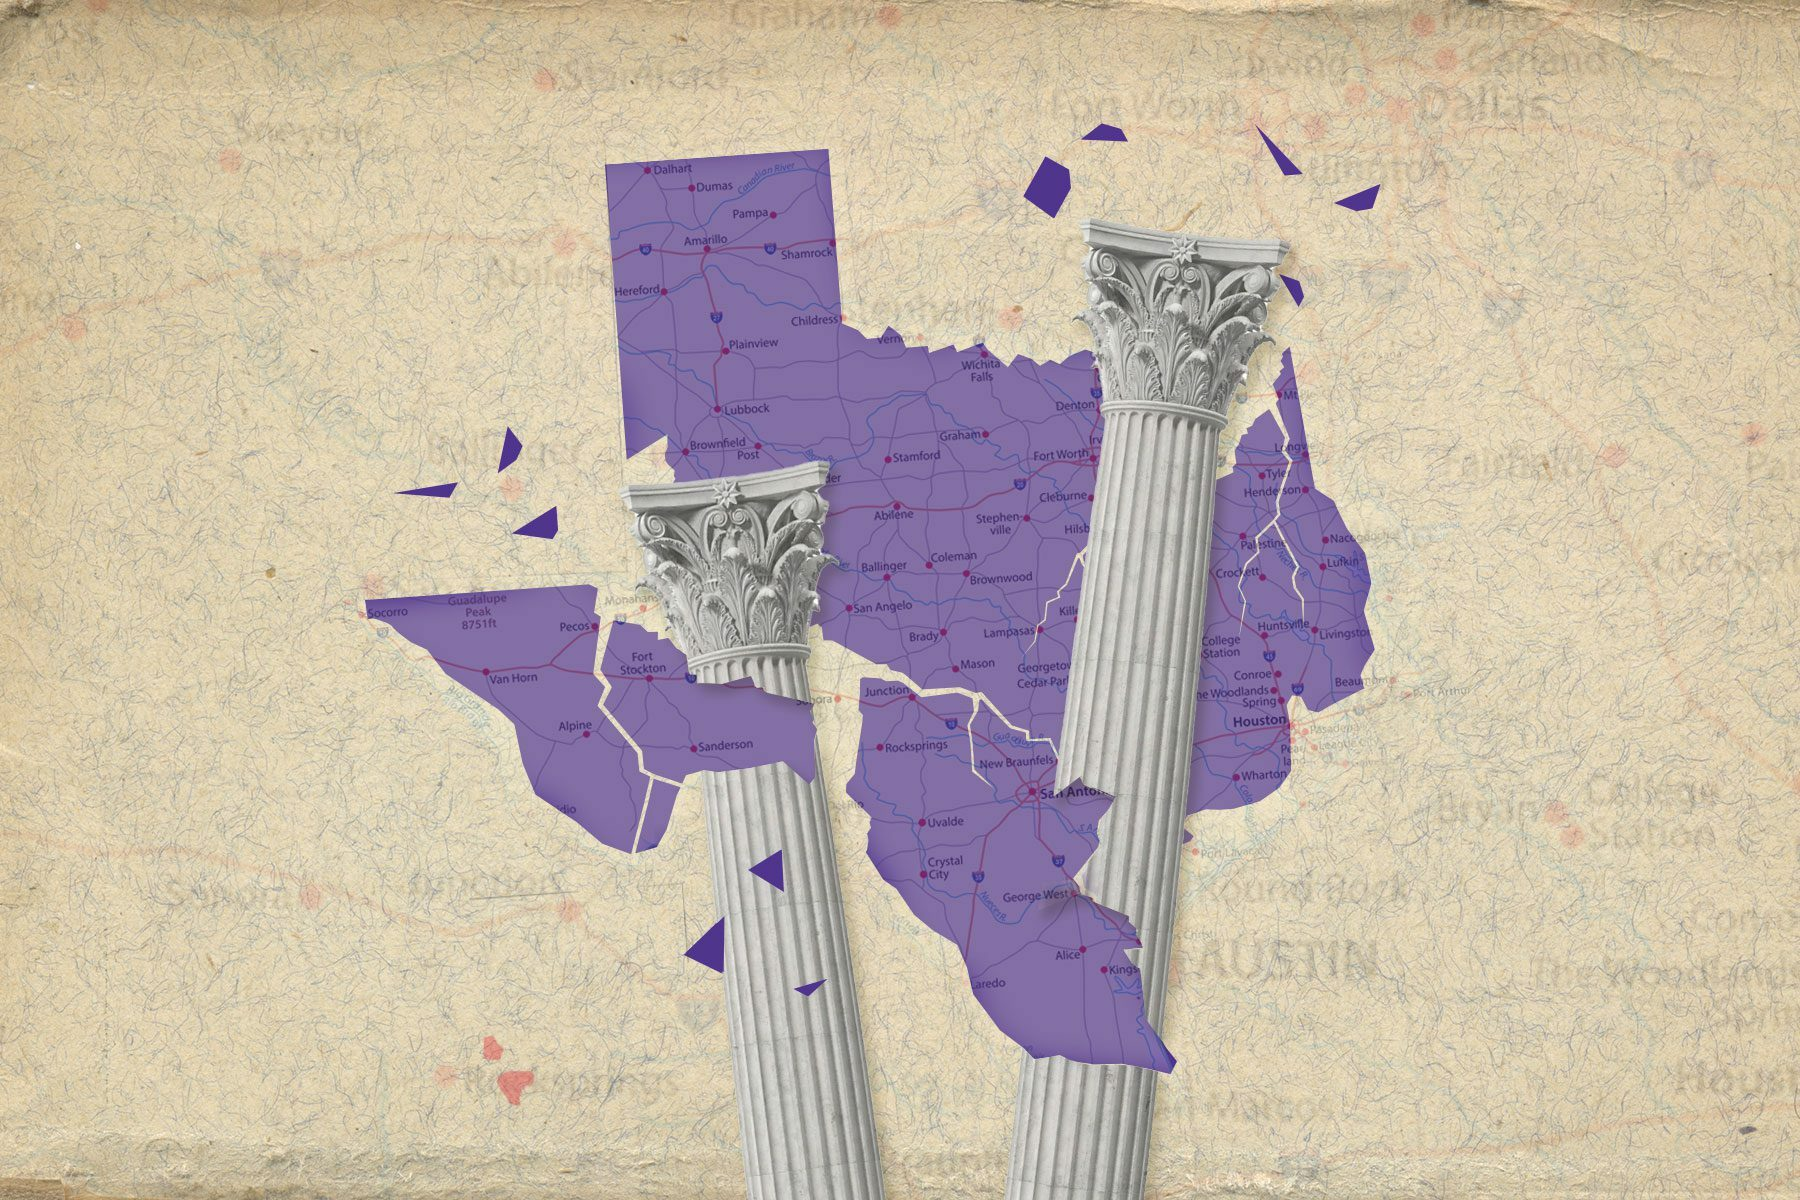 Illustration of stately corinthian columns breaking up the state of Texas.